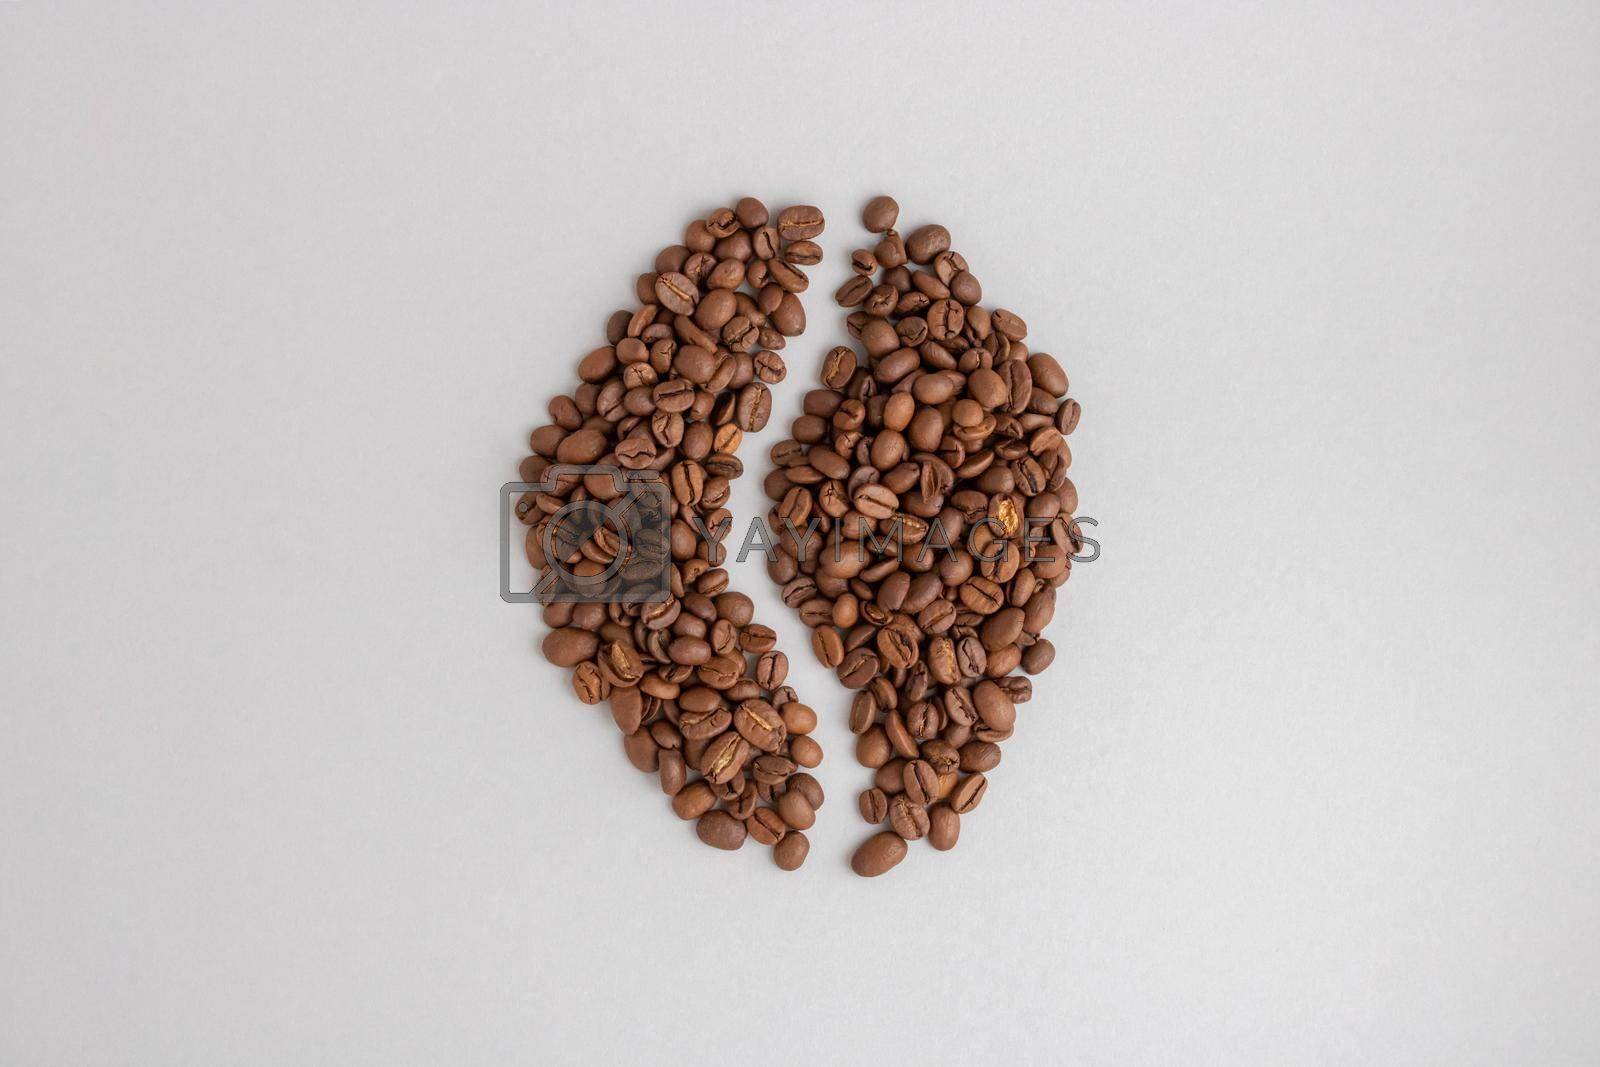 Coffee beans. Isolated on a gray background in the shape of a coffee bean.